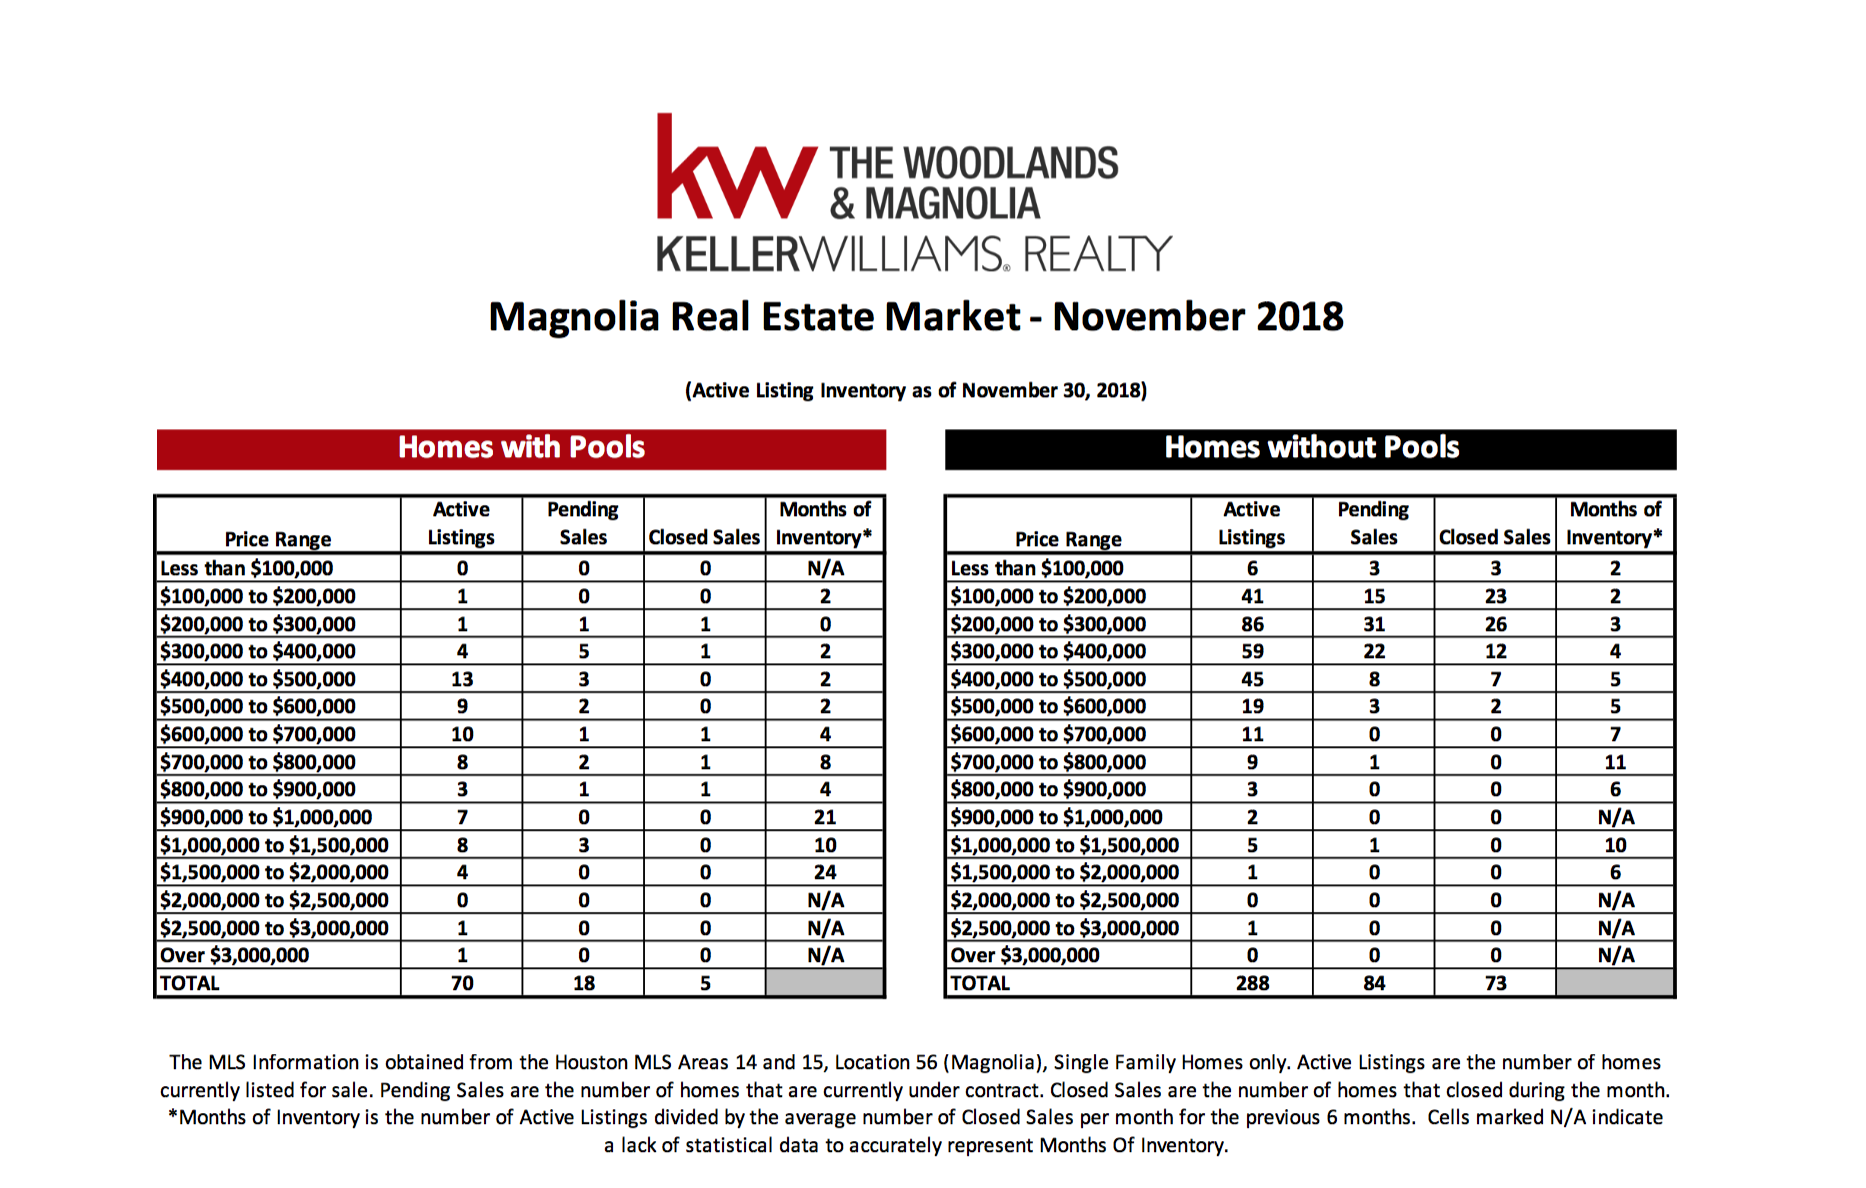 , November 2018 MarketWatch Report – Magnolia, KW Woodlands